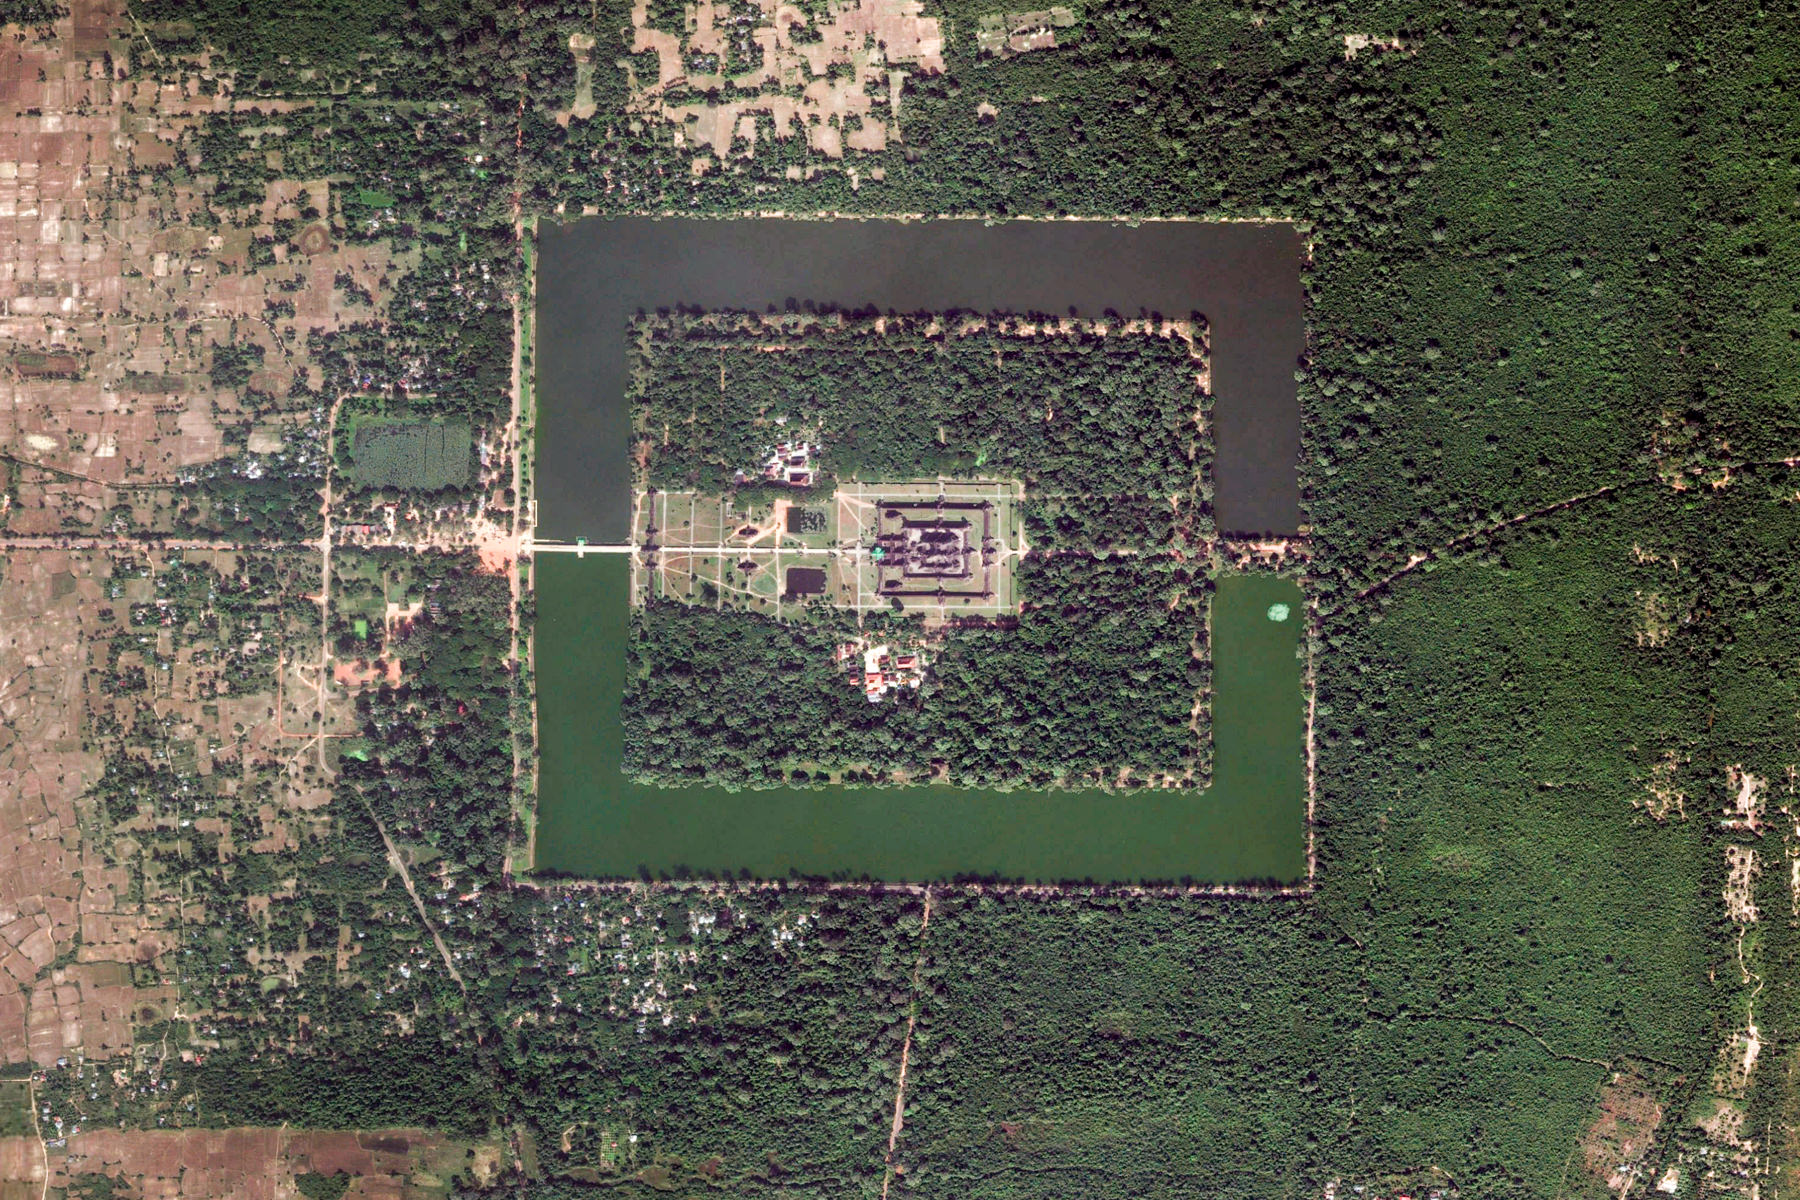 earth-view-extensie-chrome-img-3